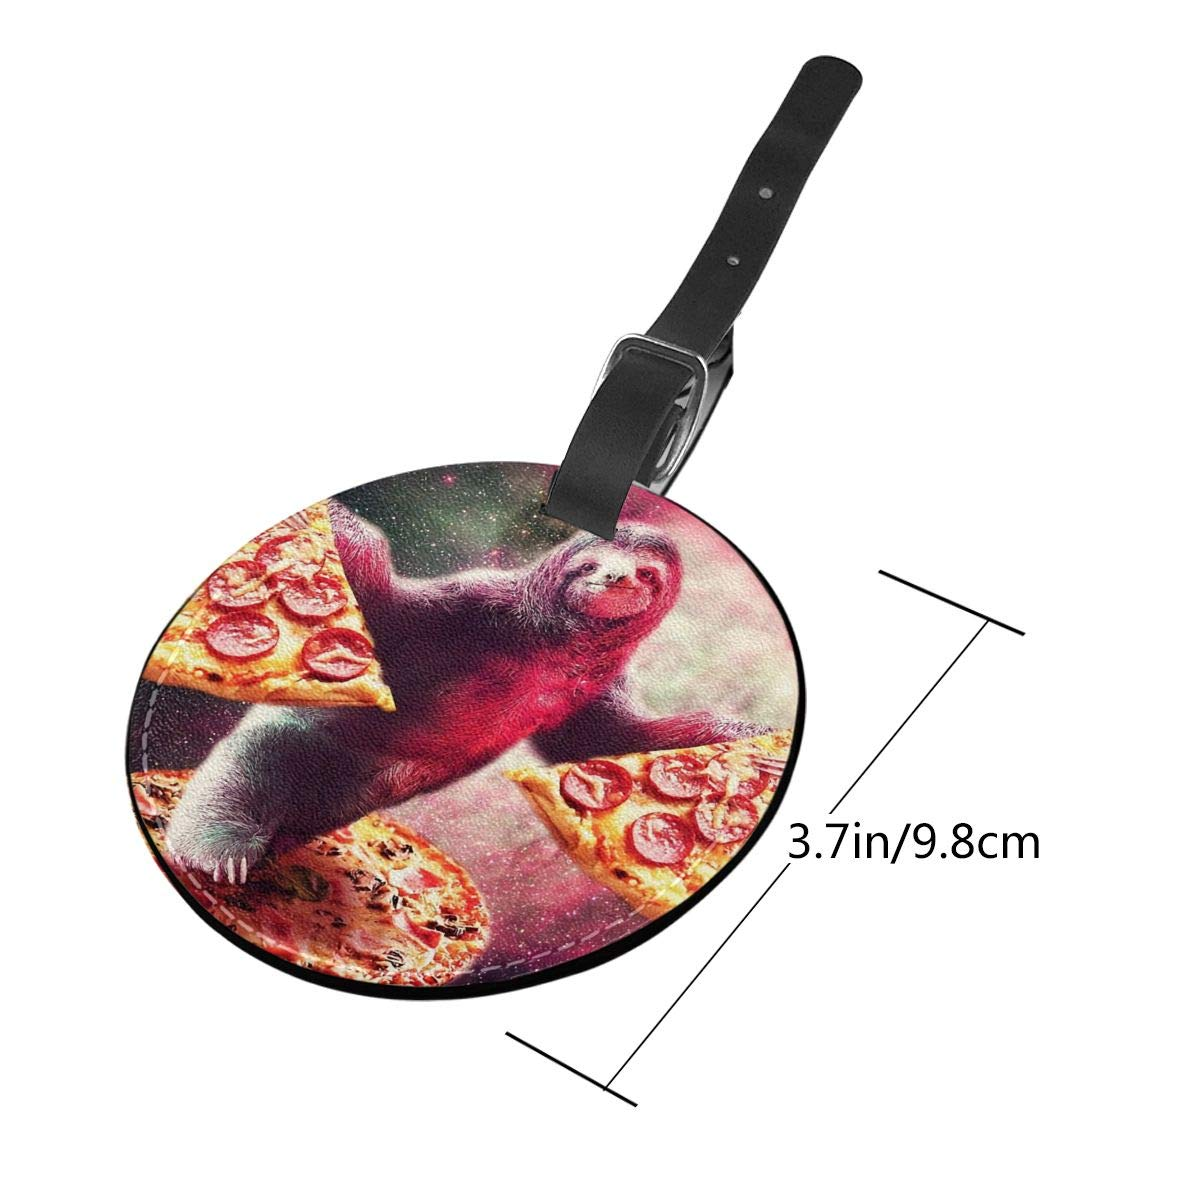 Sloth With Pizza Luggage Tags Suitcase Luggage Tags Travel Accessories Baggage Name Tags 2 PCS